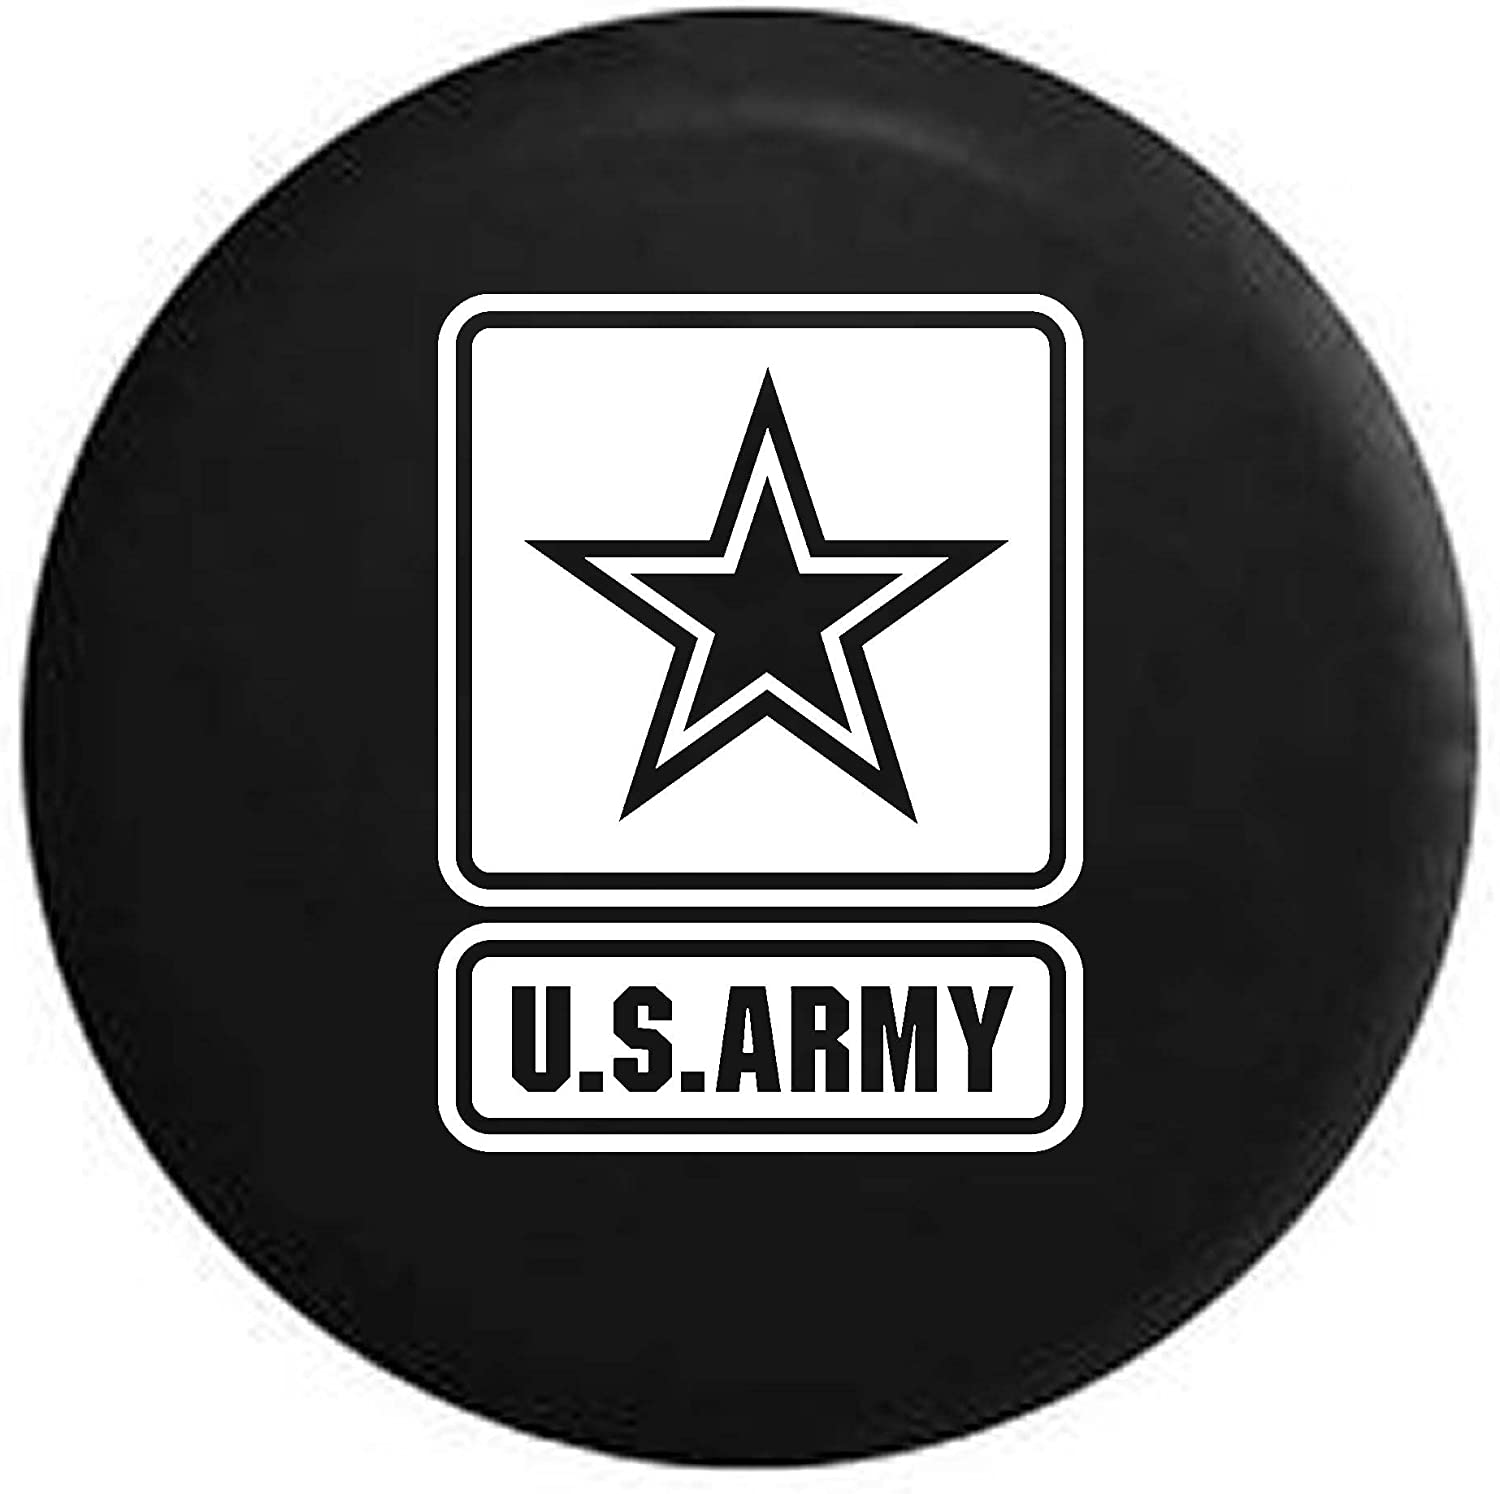 Pike Camo US Army Star Military Trailer RV Spare Tire Cover OEM Vinyl Black 30 in